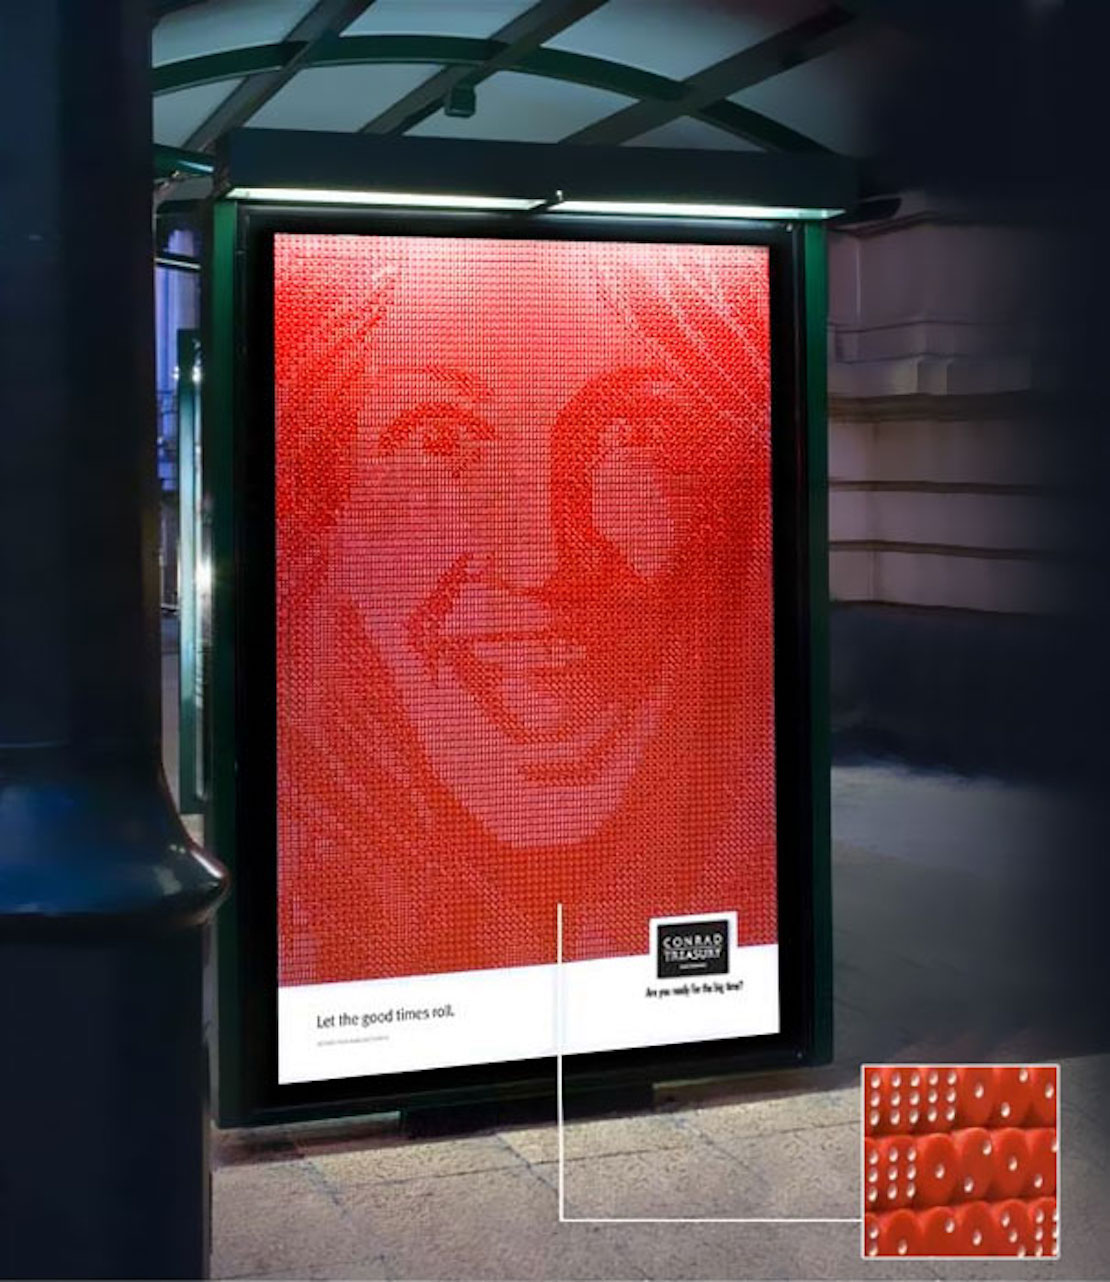 48 Fresh And Creative Bus Stop Advertisements That Will Blow Your Mind Guerrilla Marketing Photo